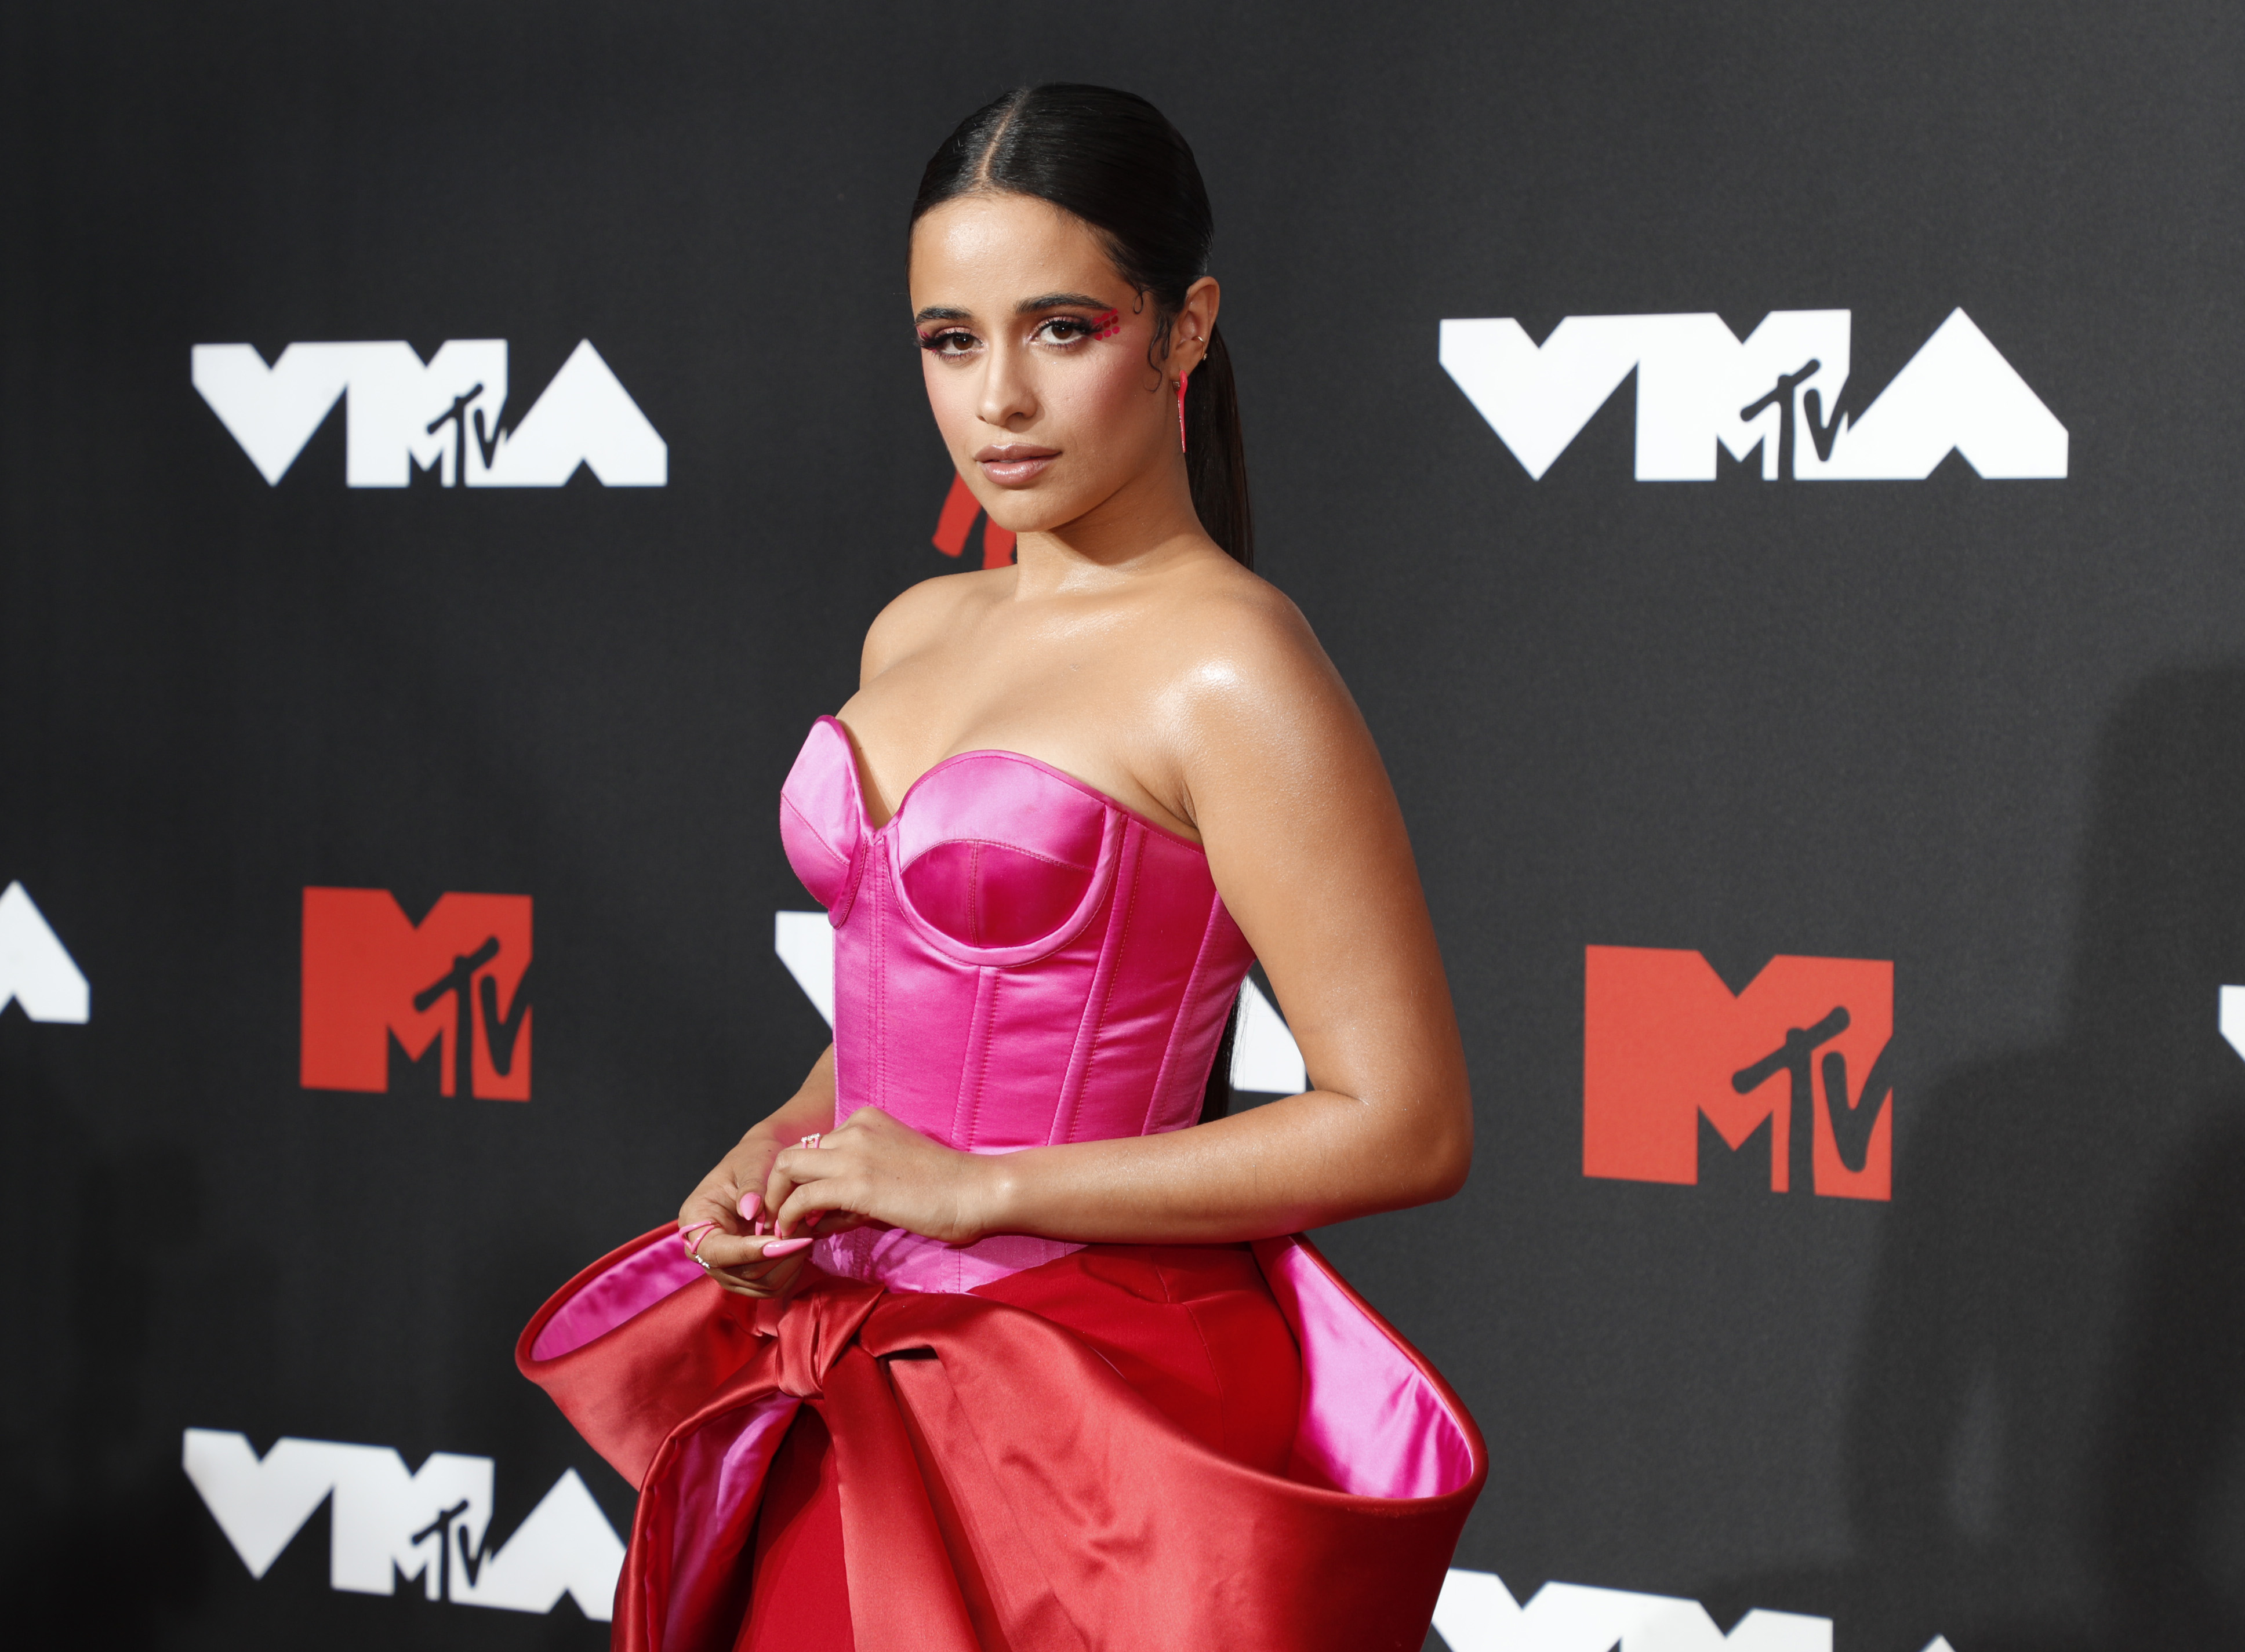 Camila Cabello at an event for 2021 MTV Video Music Awards (2021)